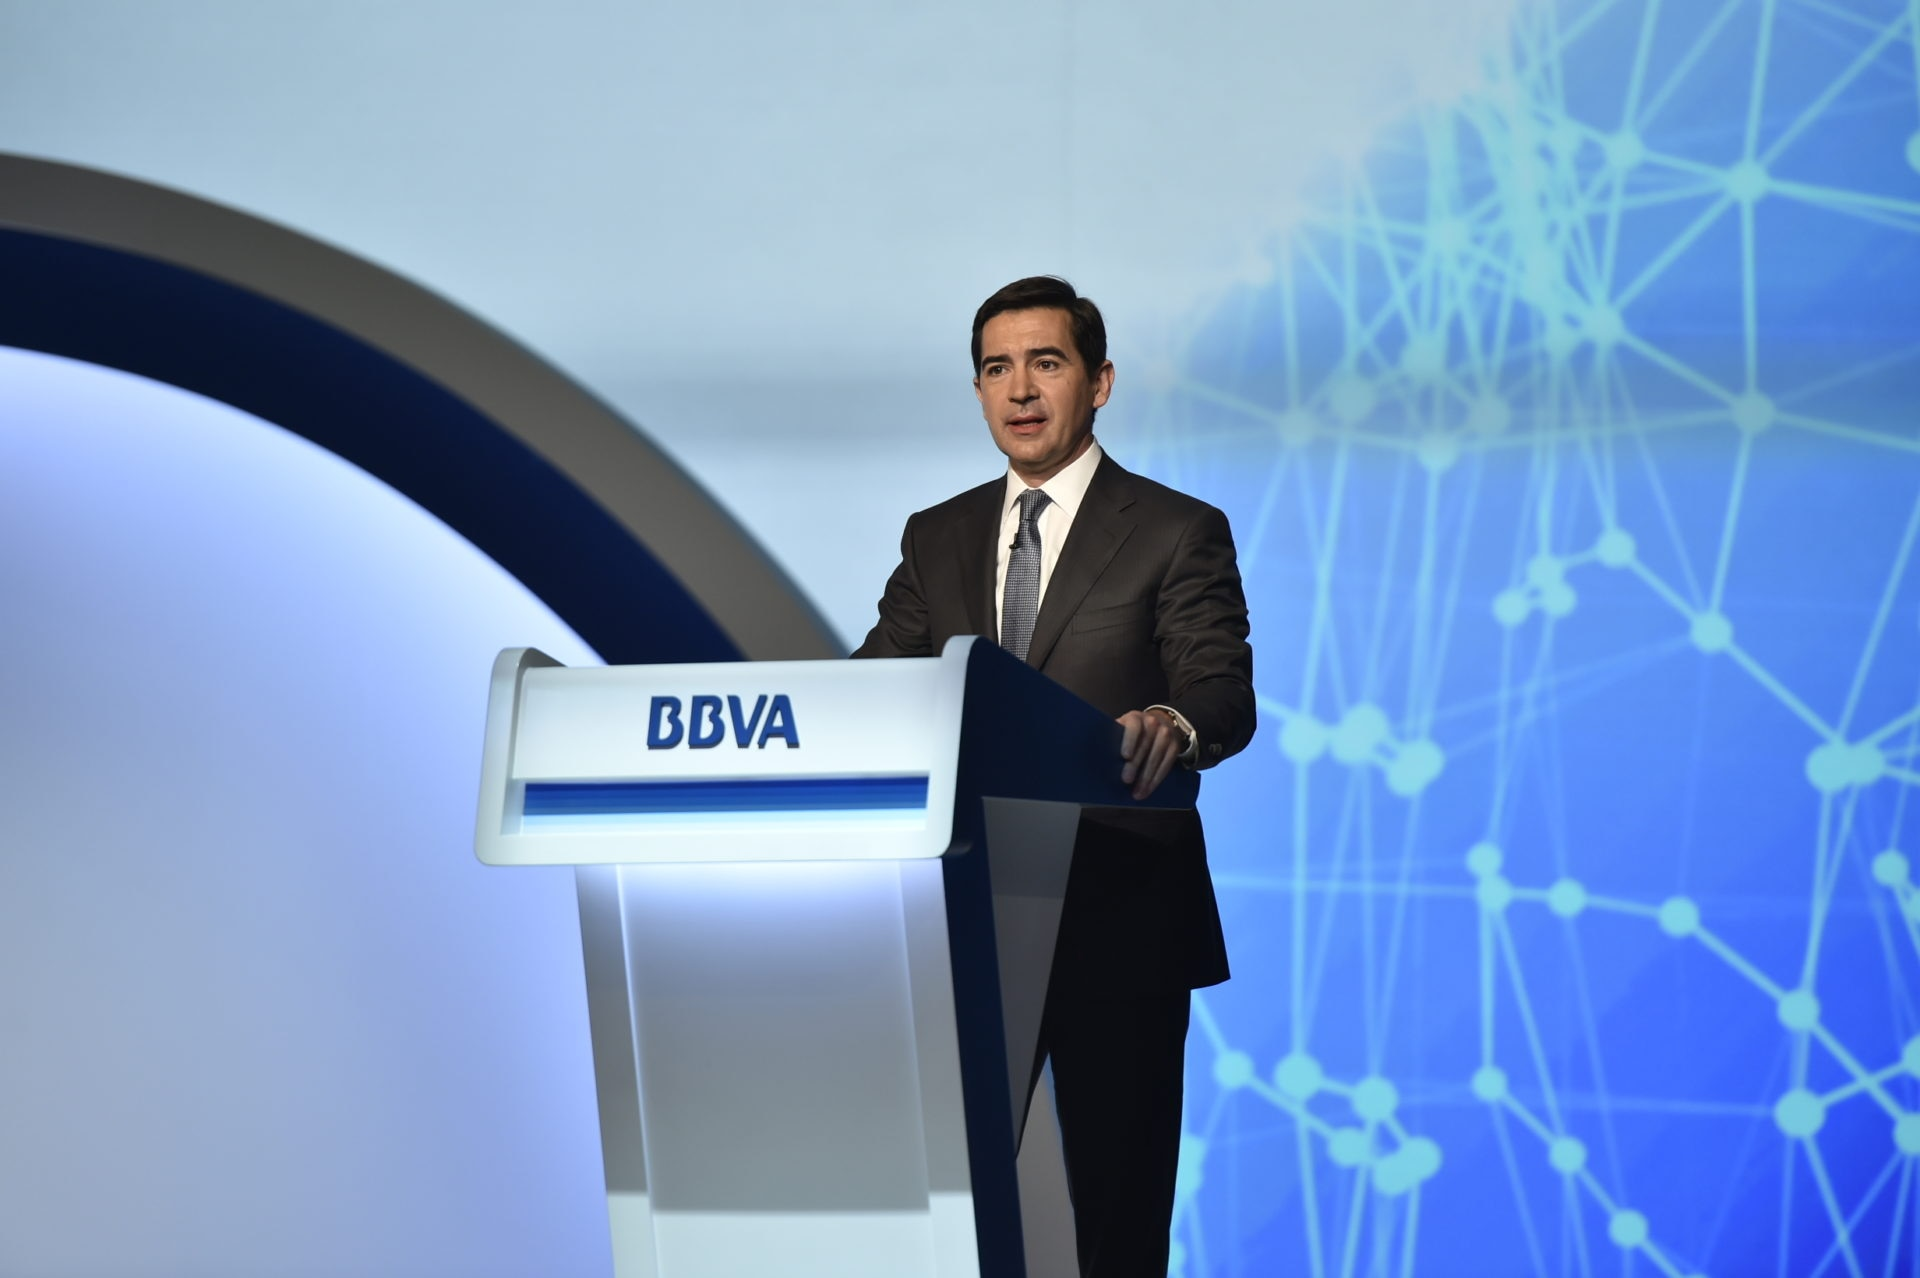 Junta General de Accionistas BBVA 2016